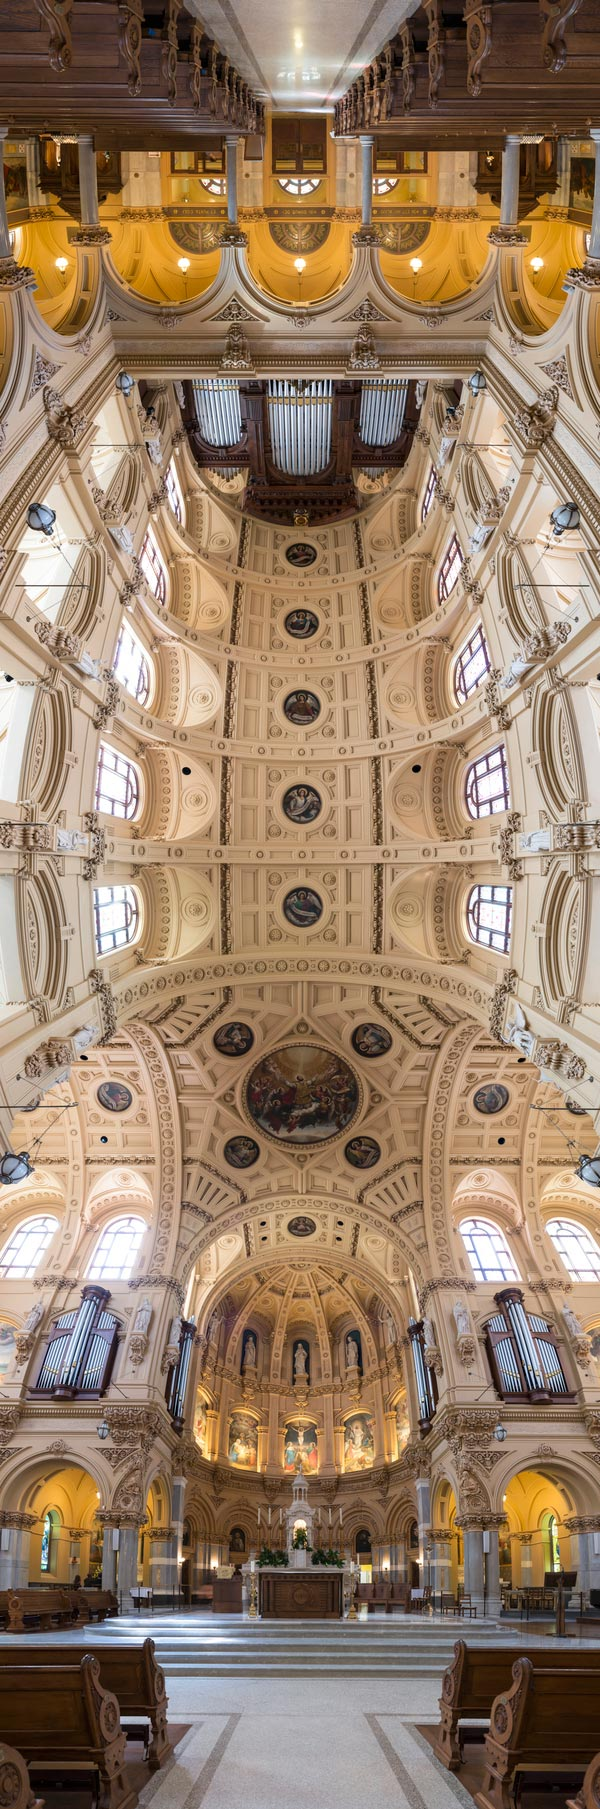 vertical-panoramas-of-church-ceilings-1